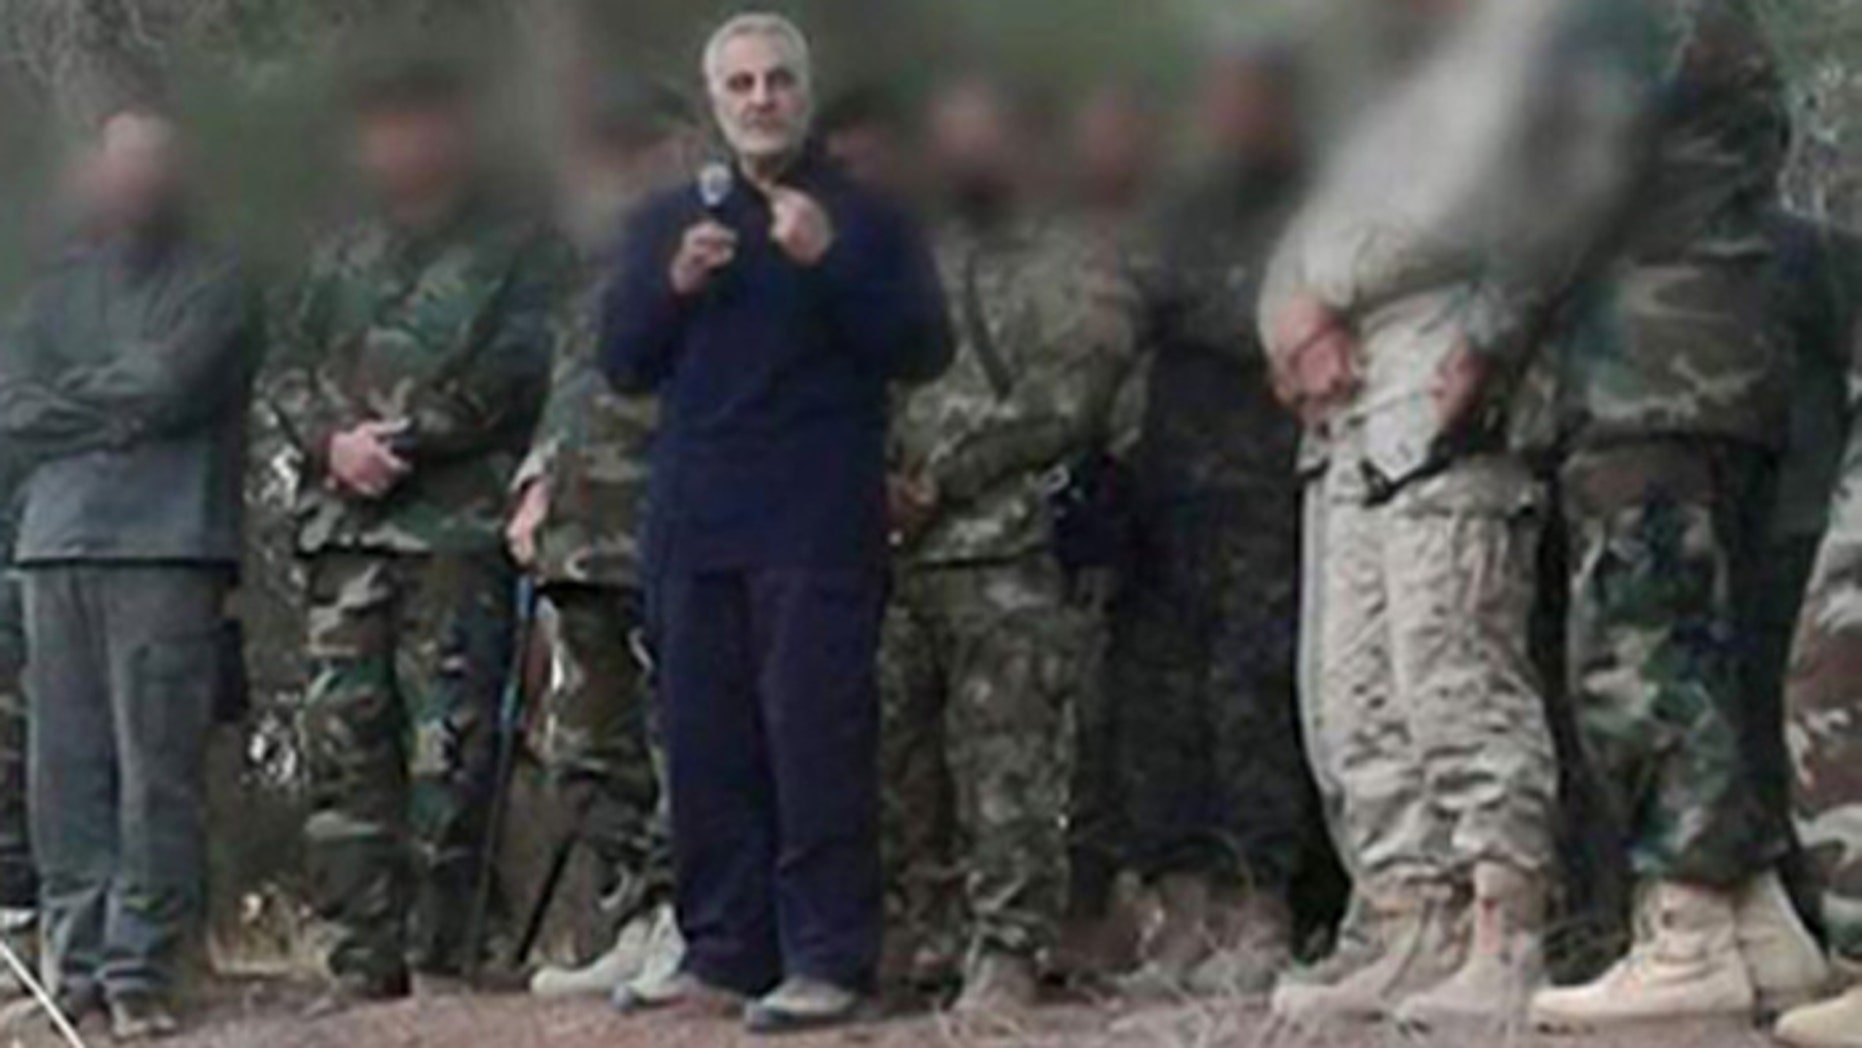 Maj. Gen. Qassem Soleimani, seen in blue suit, is commander of Iran's Islamic Revolutionary Guards Quds Force.